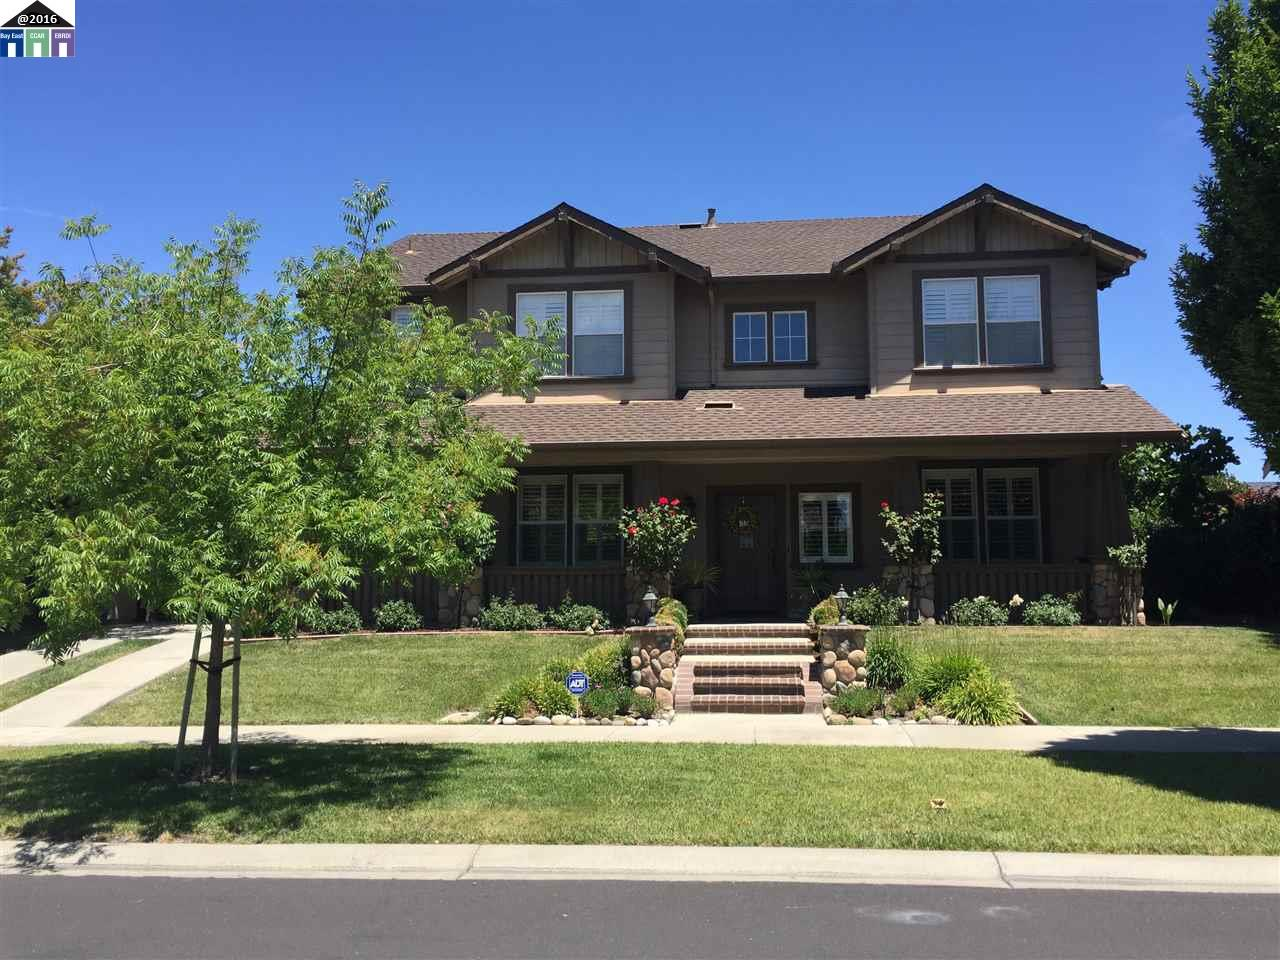 2076 Hall Circle, LIVERMORE, CA 94550